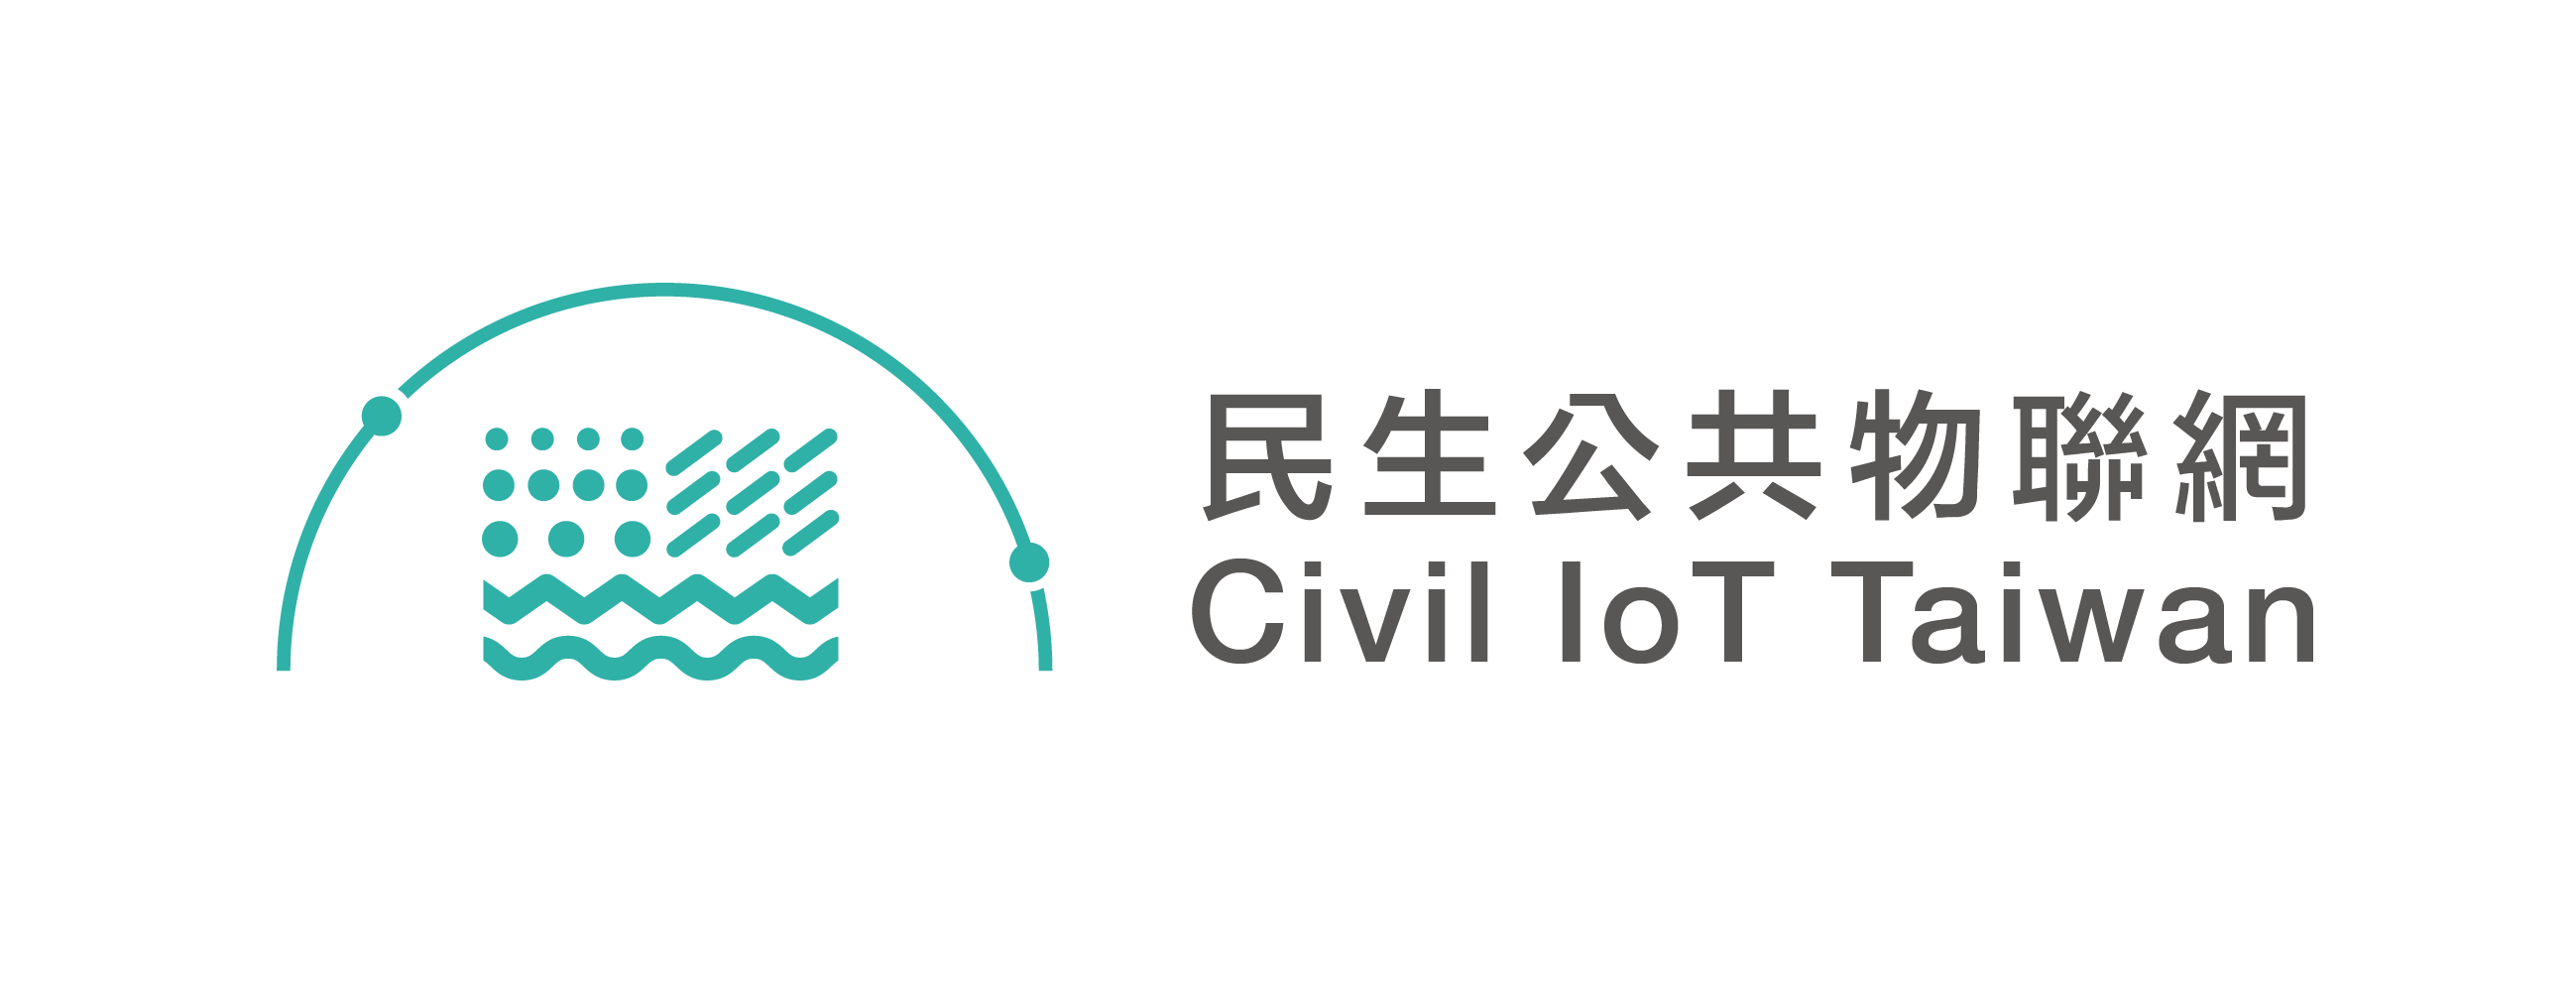 Civil IoT Taiwan